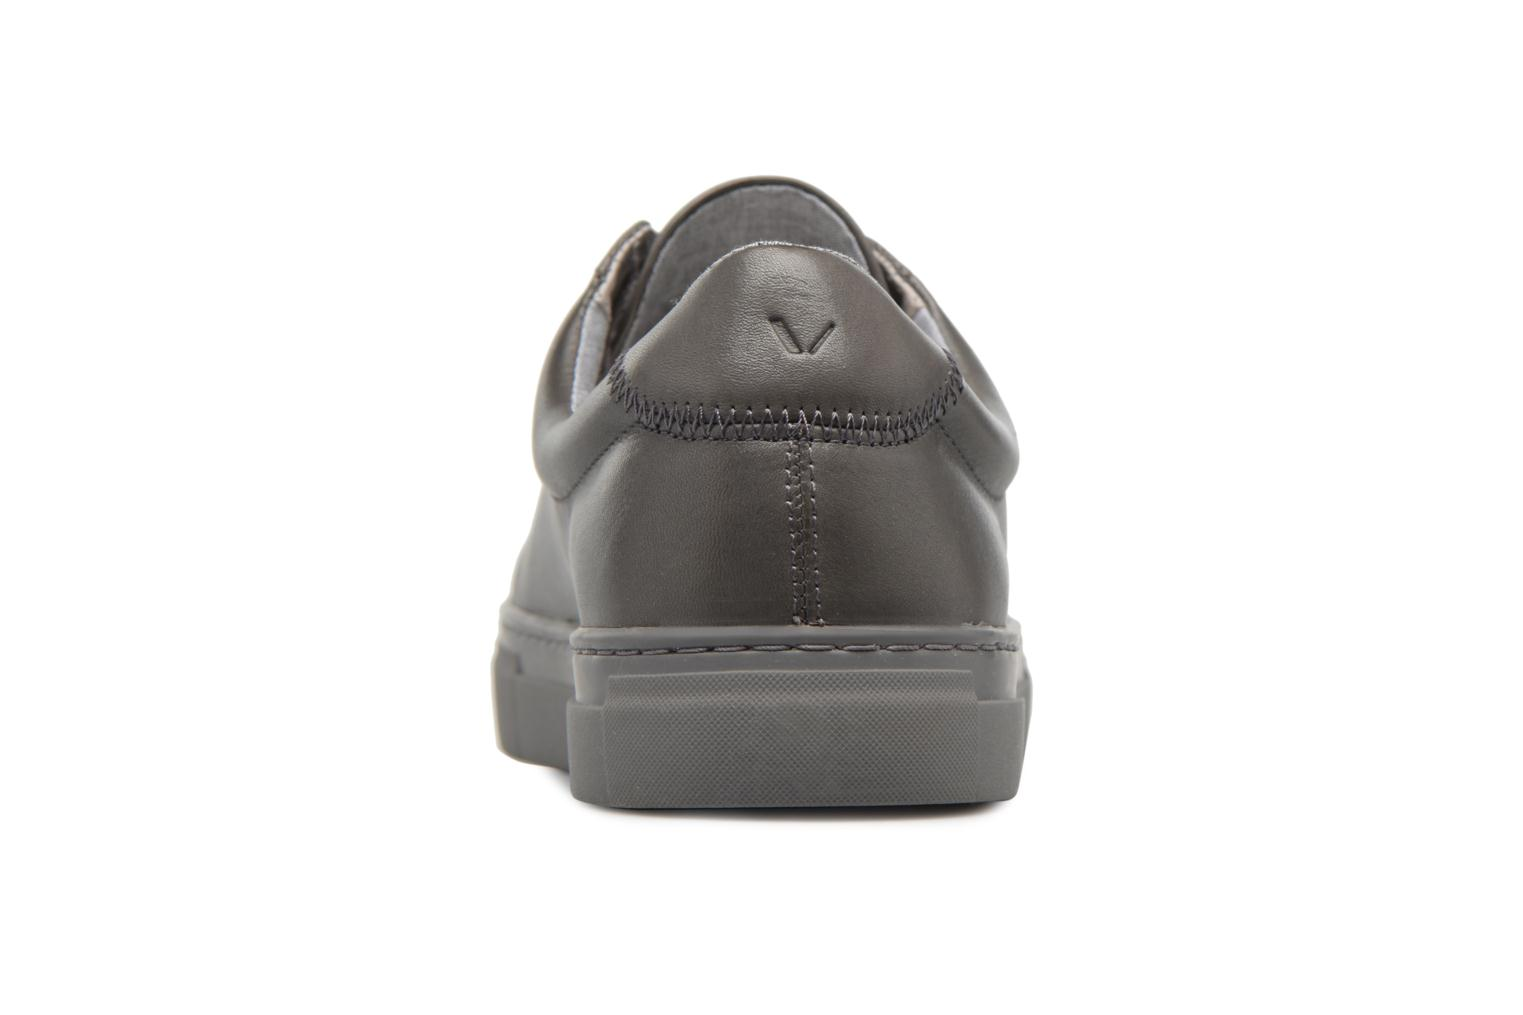 Vagabond Dark 4483 Grey Shoemakers Paul 001 6xq6r7f8w